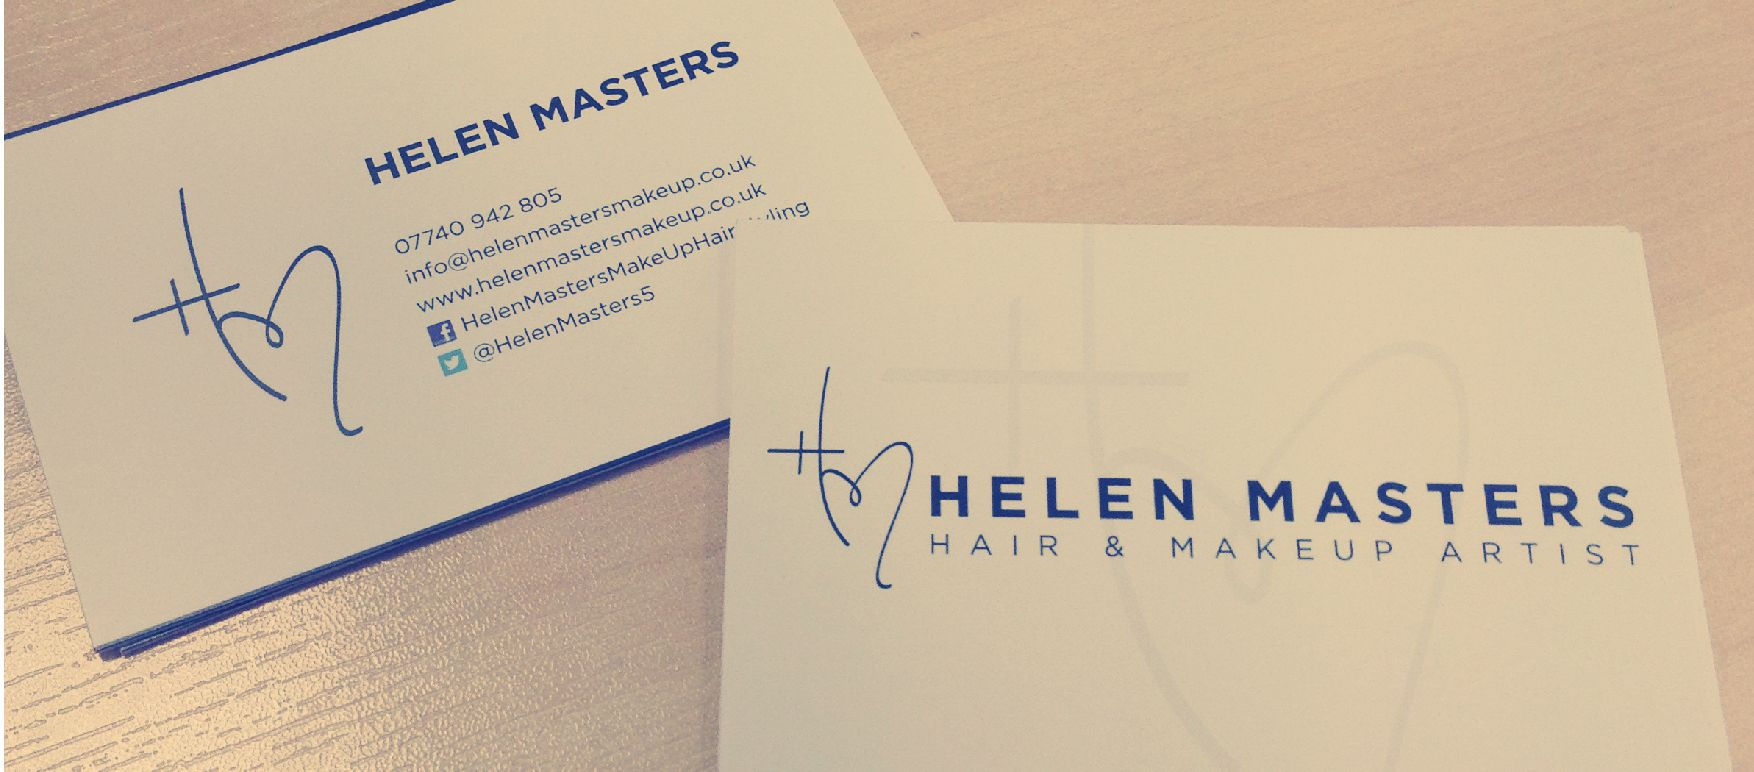 Helen master hair and makeup business card design design by helen master hair and makeup business card design colourmoves Images